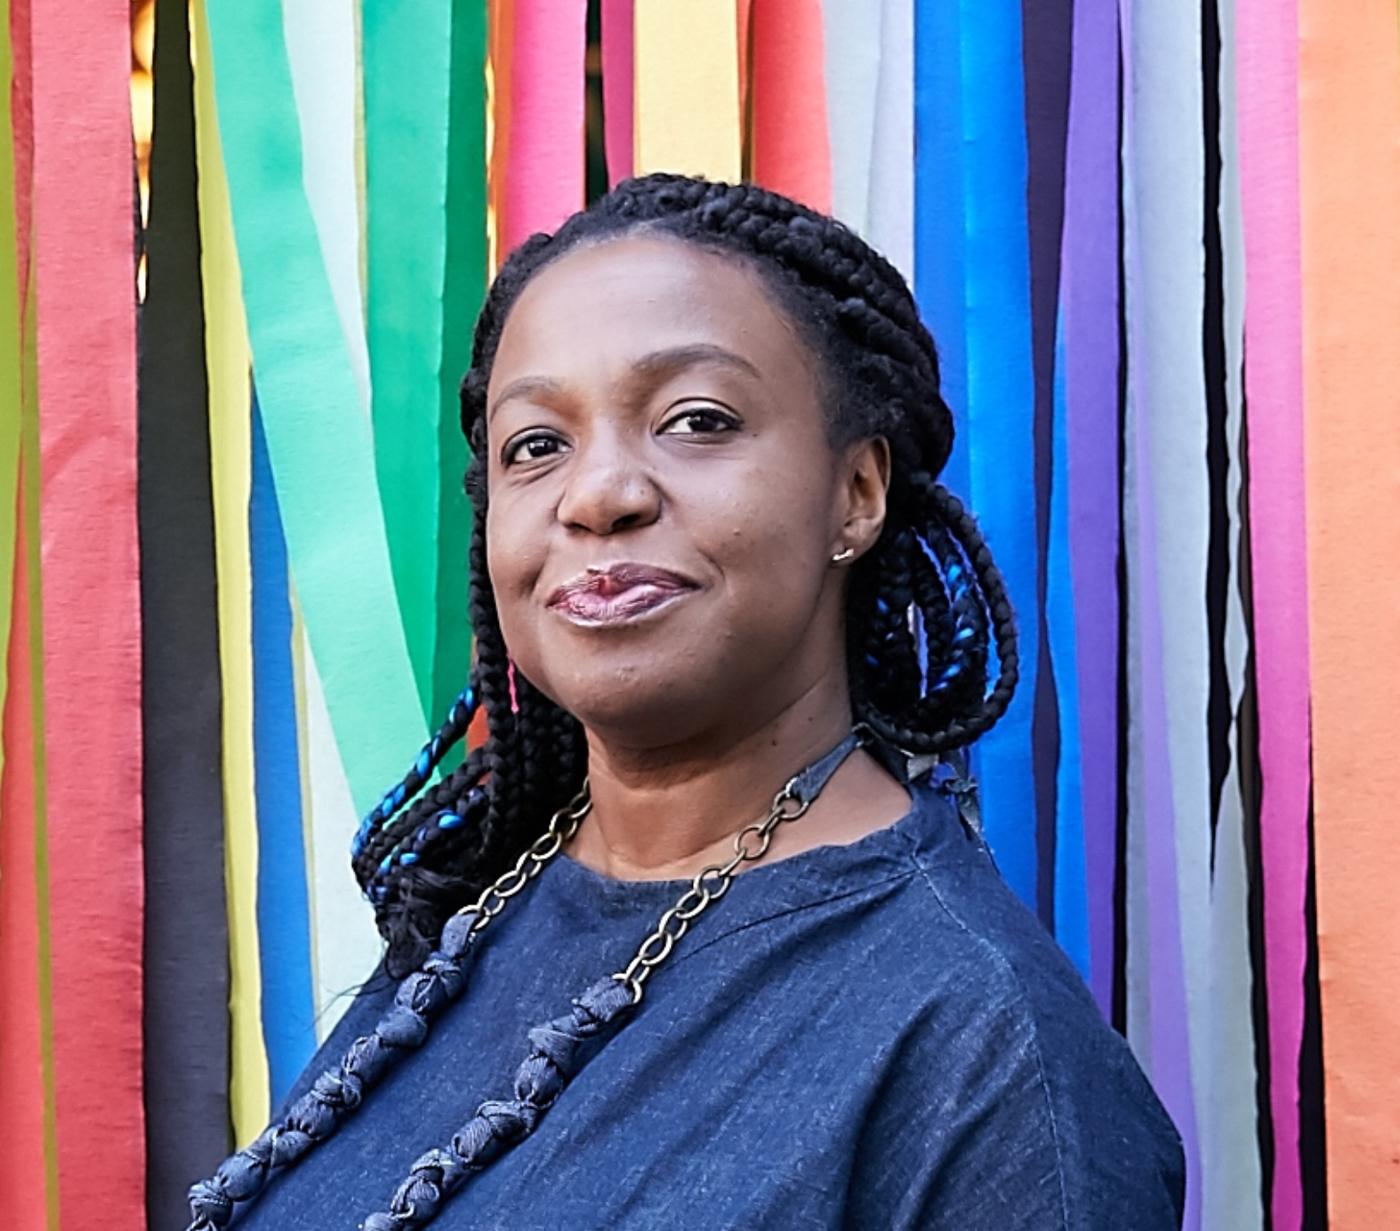 Phillips is proud to support Cool Culture, a non-profit dedicated to improving access to New York City's world-class cultural institutions. We sat down with Executive Director Candice Anderson to learn more about the important work they do.